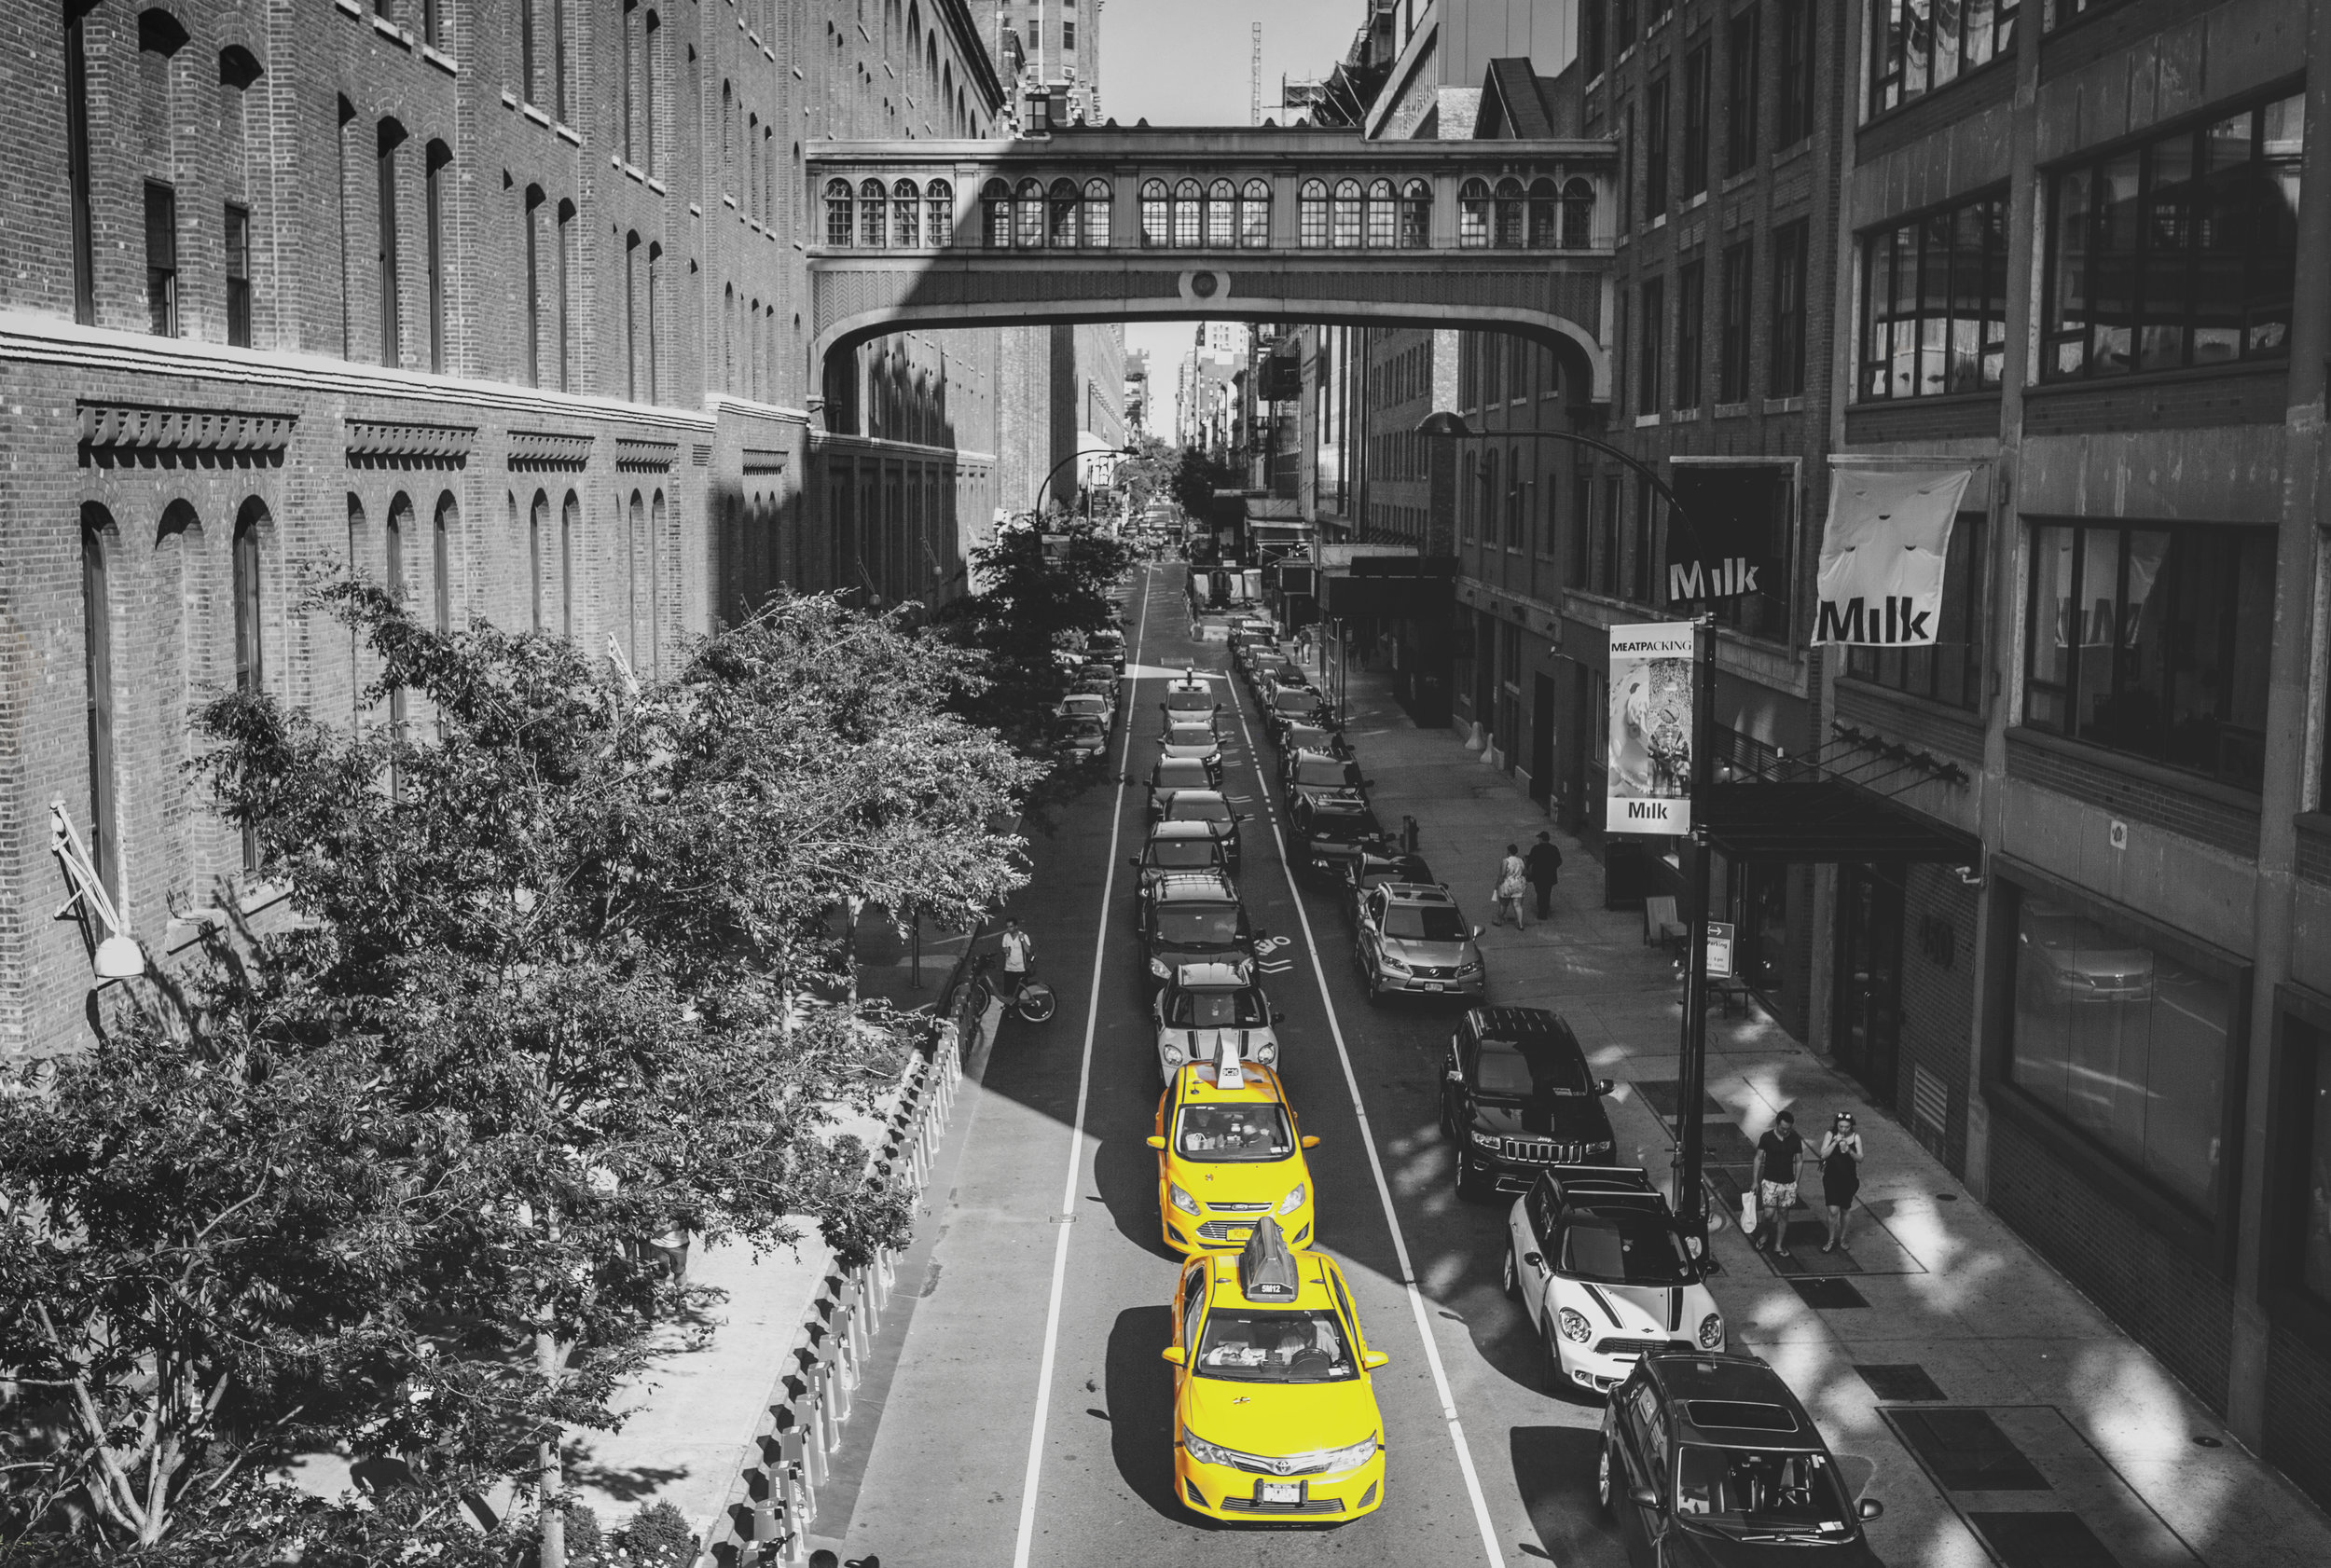 View from the High Line, New York City